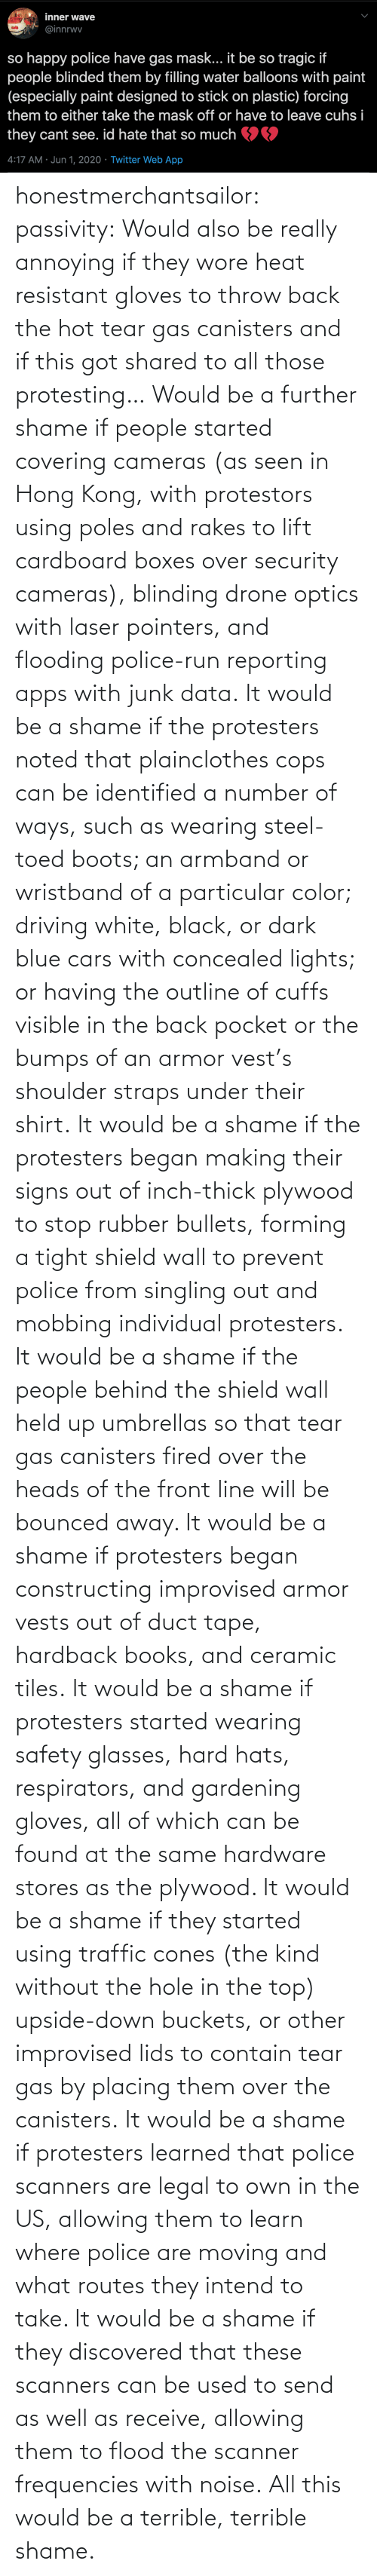 Wearing: honestmerchantsailor:  passivity: Would also be really annoying if they wore heat resistant gloves to throw back the hot tear gas canisters and if this got shared to all those protesting… Would be a further shame if people started covering cameras (as seen in Hong Kong, with protestors using poles and rakes to lift cardboard boxes over security cameras), blinding drone optics with laser pointers, and flooding police-run reporting apps with junk data. It would be a shame if the protesters noted that plainclothes cops can be identified a number of ways, such as wearing steel-toed boots; an armband or wristband of a particular color; driving white, black, or dark blue cars with concealed lights; or having the outline of cuffs visible in the back pocket or the bumps of an armor vest's shoulder straps under their shirt. It would be a shame if the protesters began making their signs out of inch-thick plywood to stop rubber bullets, forming a tight shield wall to prevent police from singling out and mobbing individual protesters. It would be a shame if the people behind the shield wall held up umbrellas so that tear gas canisters fired over the heads of the front line will be bounced away. It would be a shame if protesters began constructing improvised armor vests out of duct tape, hardback books, and ceramic tiles. It would be a shame if protesters started wearing safety glasses, hard hats, respirators, and gardening gloves, all of which can be found at the same hardware stores as the plywood. It would be a shame if they started using traffic cones (the kind without the hole in the top) upside-down buckets, or other improvised lids to contain tear gas by placing them over the canisters. It would be a shame if protesters learned that police scanners are legal to own in the US, allowing them to learn where police are moving and what routes they intend to take. It would be a shame if they discovered that these scanners can be used to send as well as receive, allowing them to flood the scanner frequencies with noise. All this would be a terrible, terrible shame.